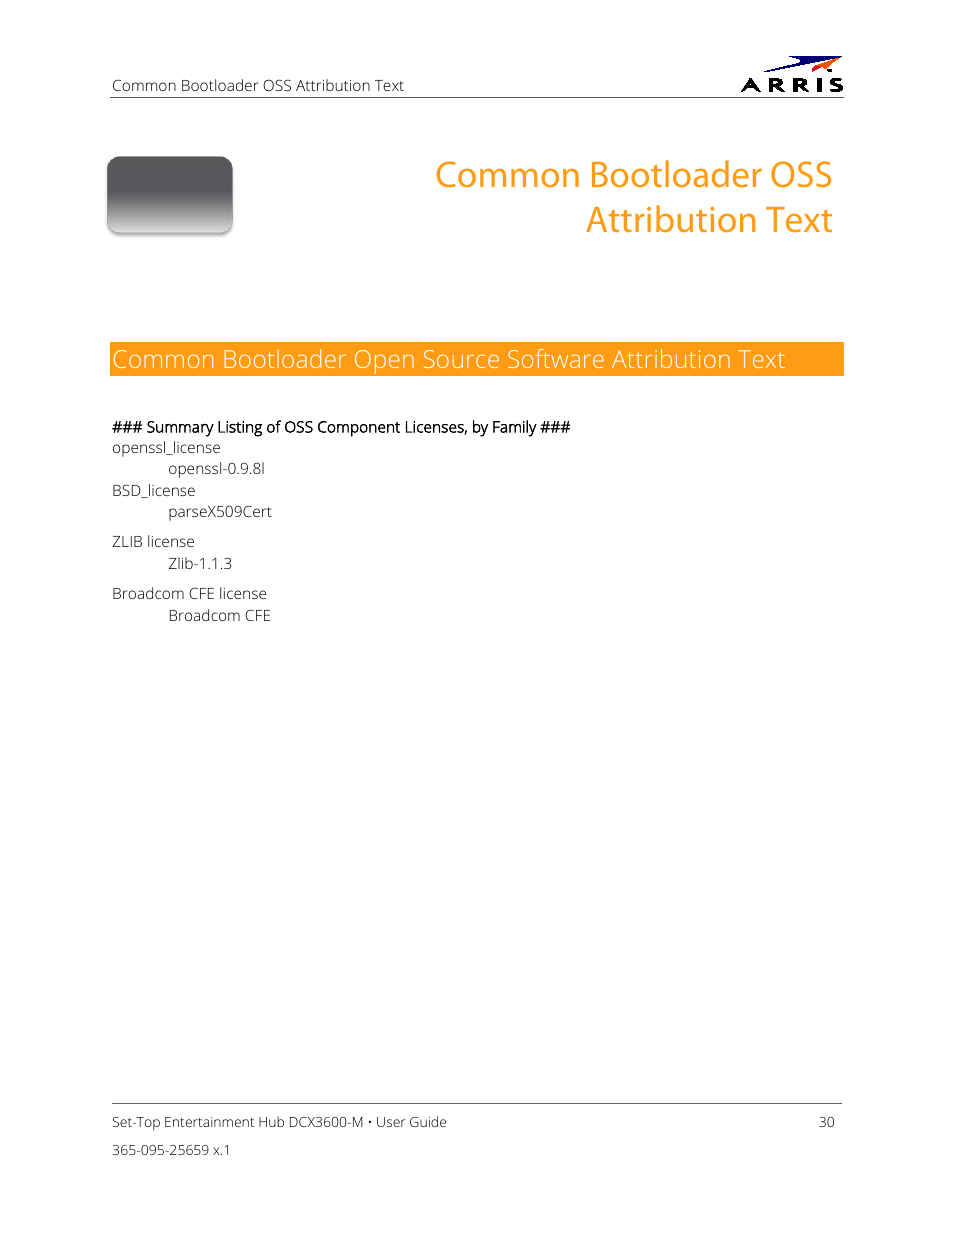 Common bootloader oss attribution text | ARRIS DCX3600 User Guide